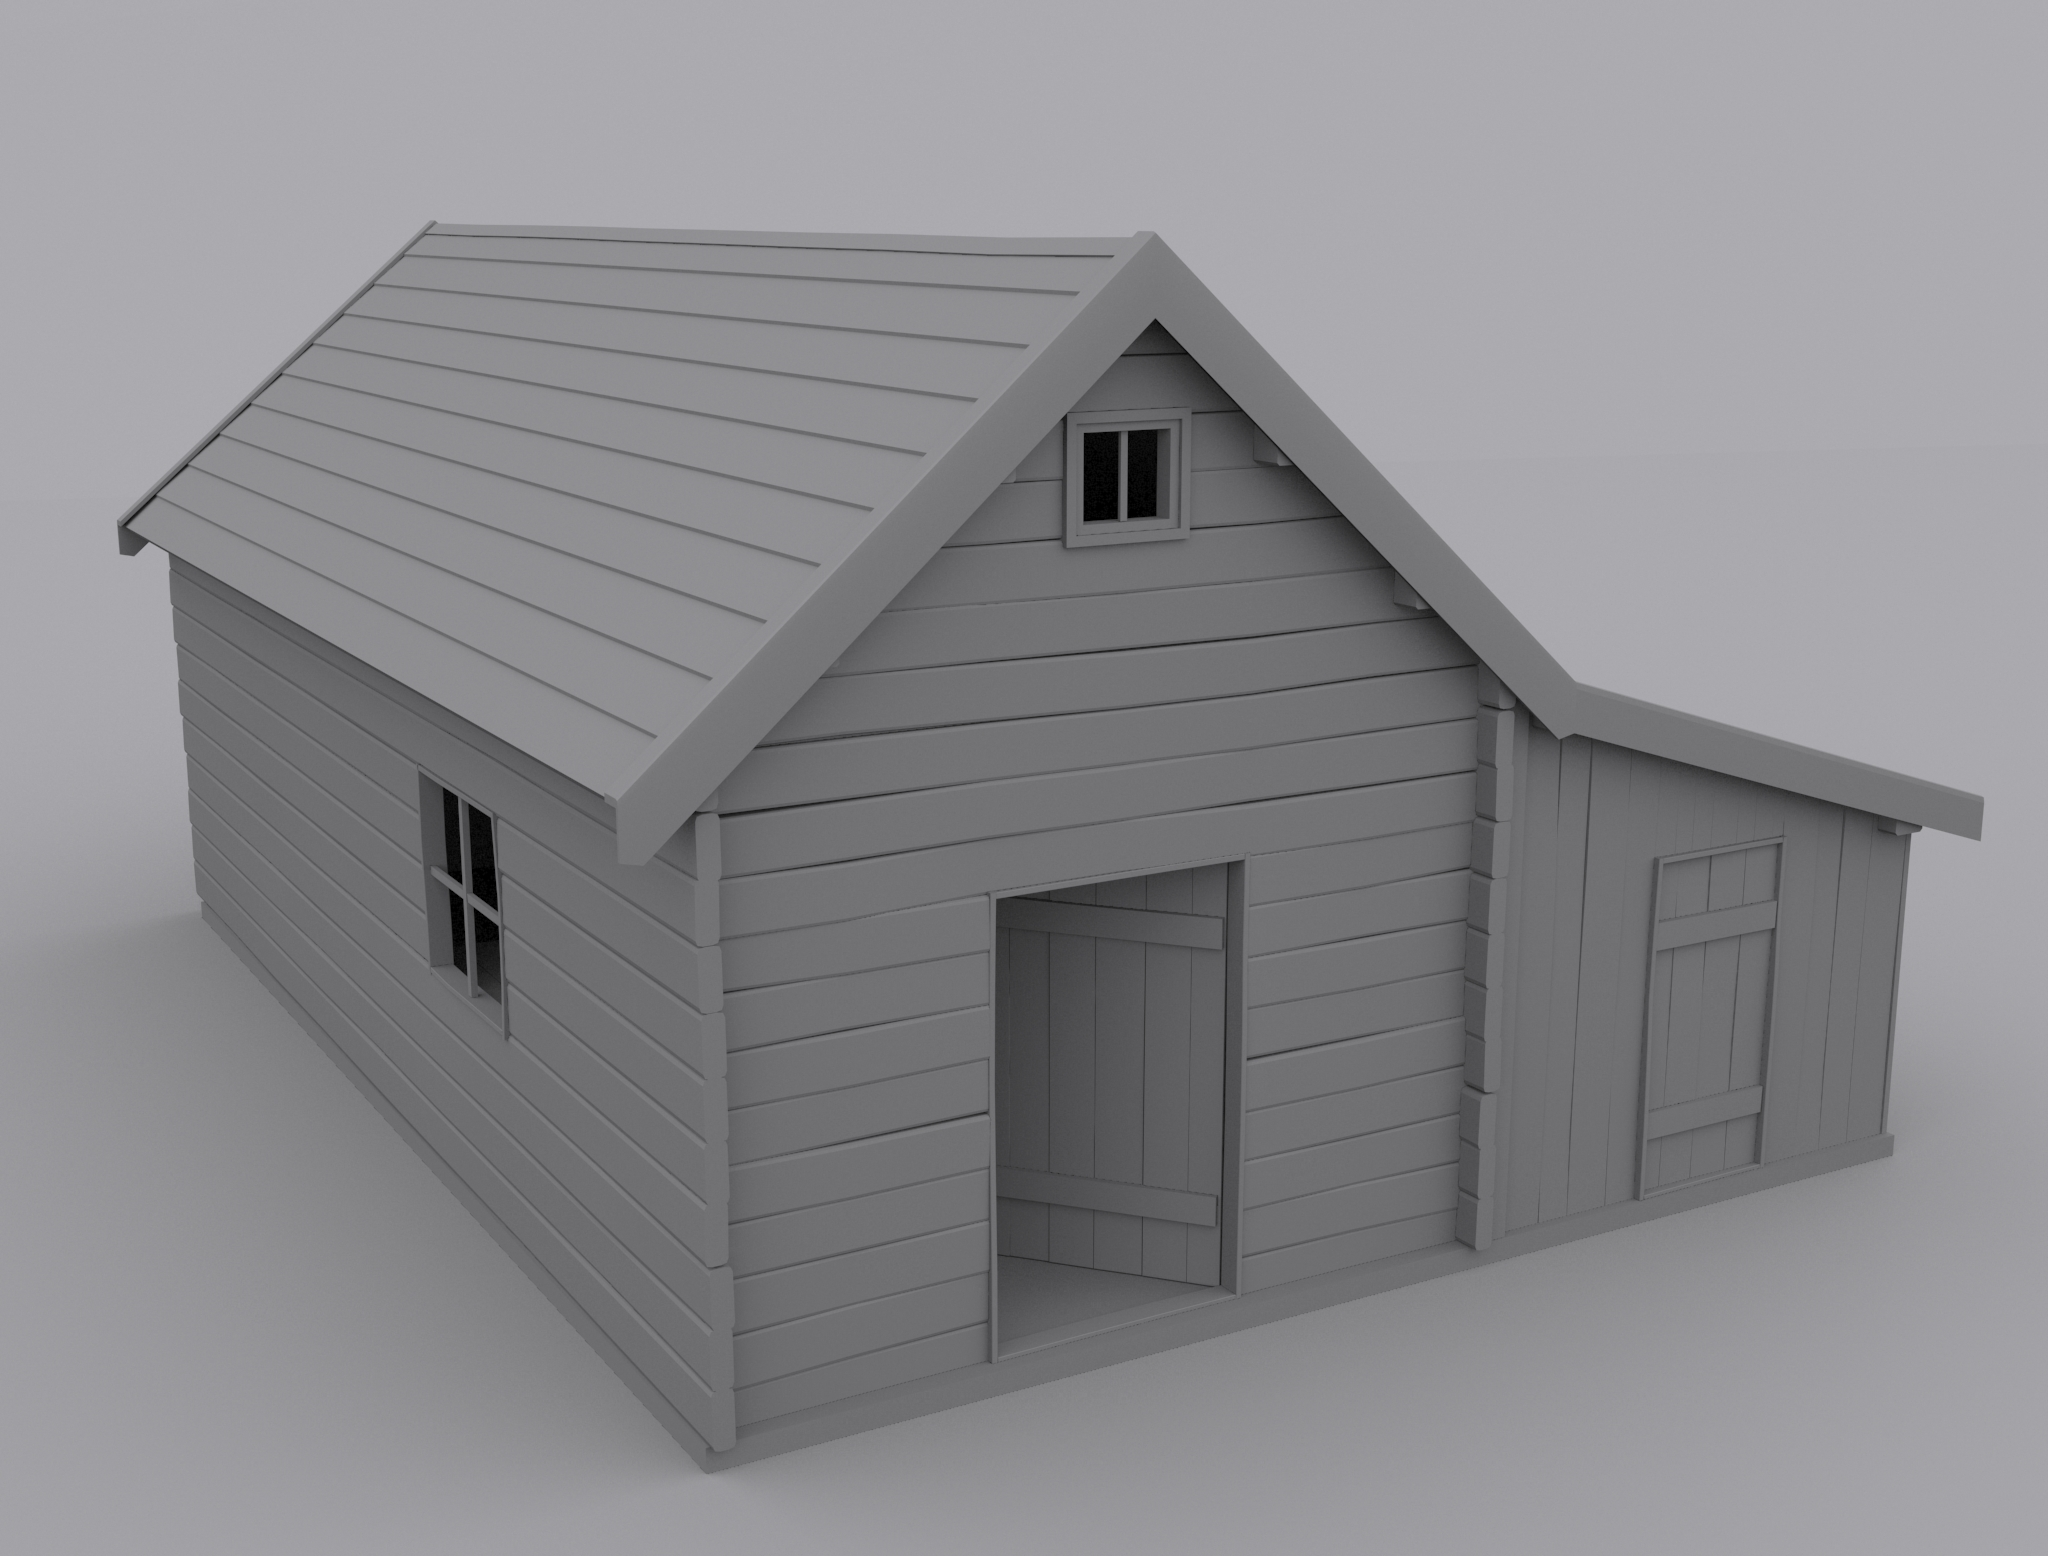 Old house 3d model max House 3d model